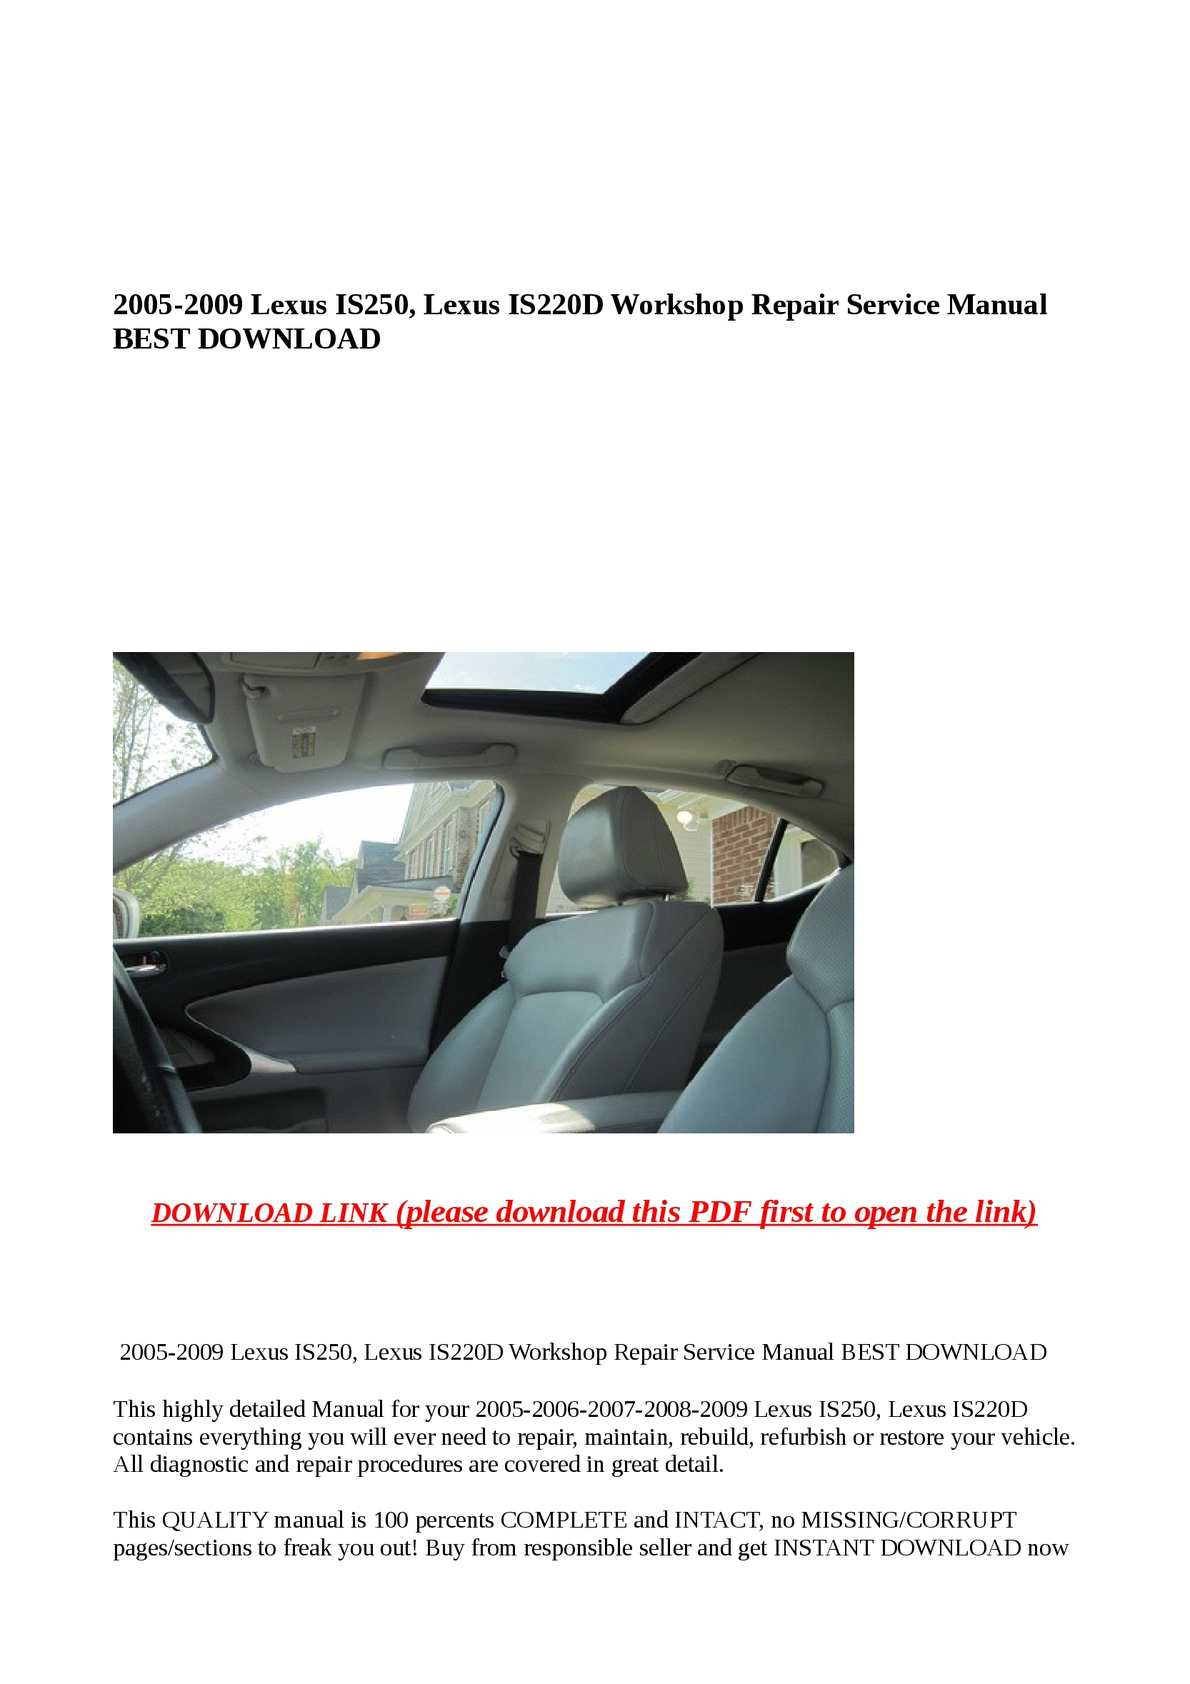 lexus is220d wiring diagram wiring library Lexus IS 350 F Sport calam�o 2005 2009 lexus is250, lexus is220d workshop repair service manua